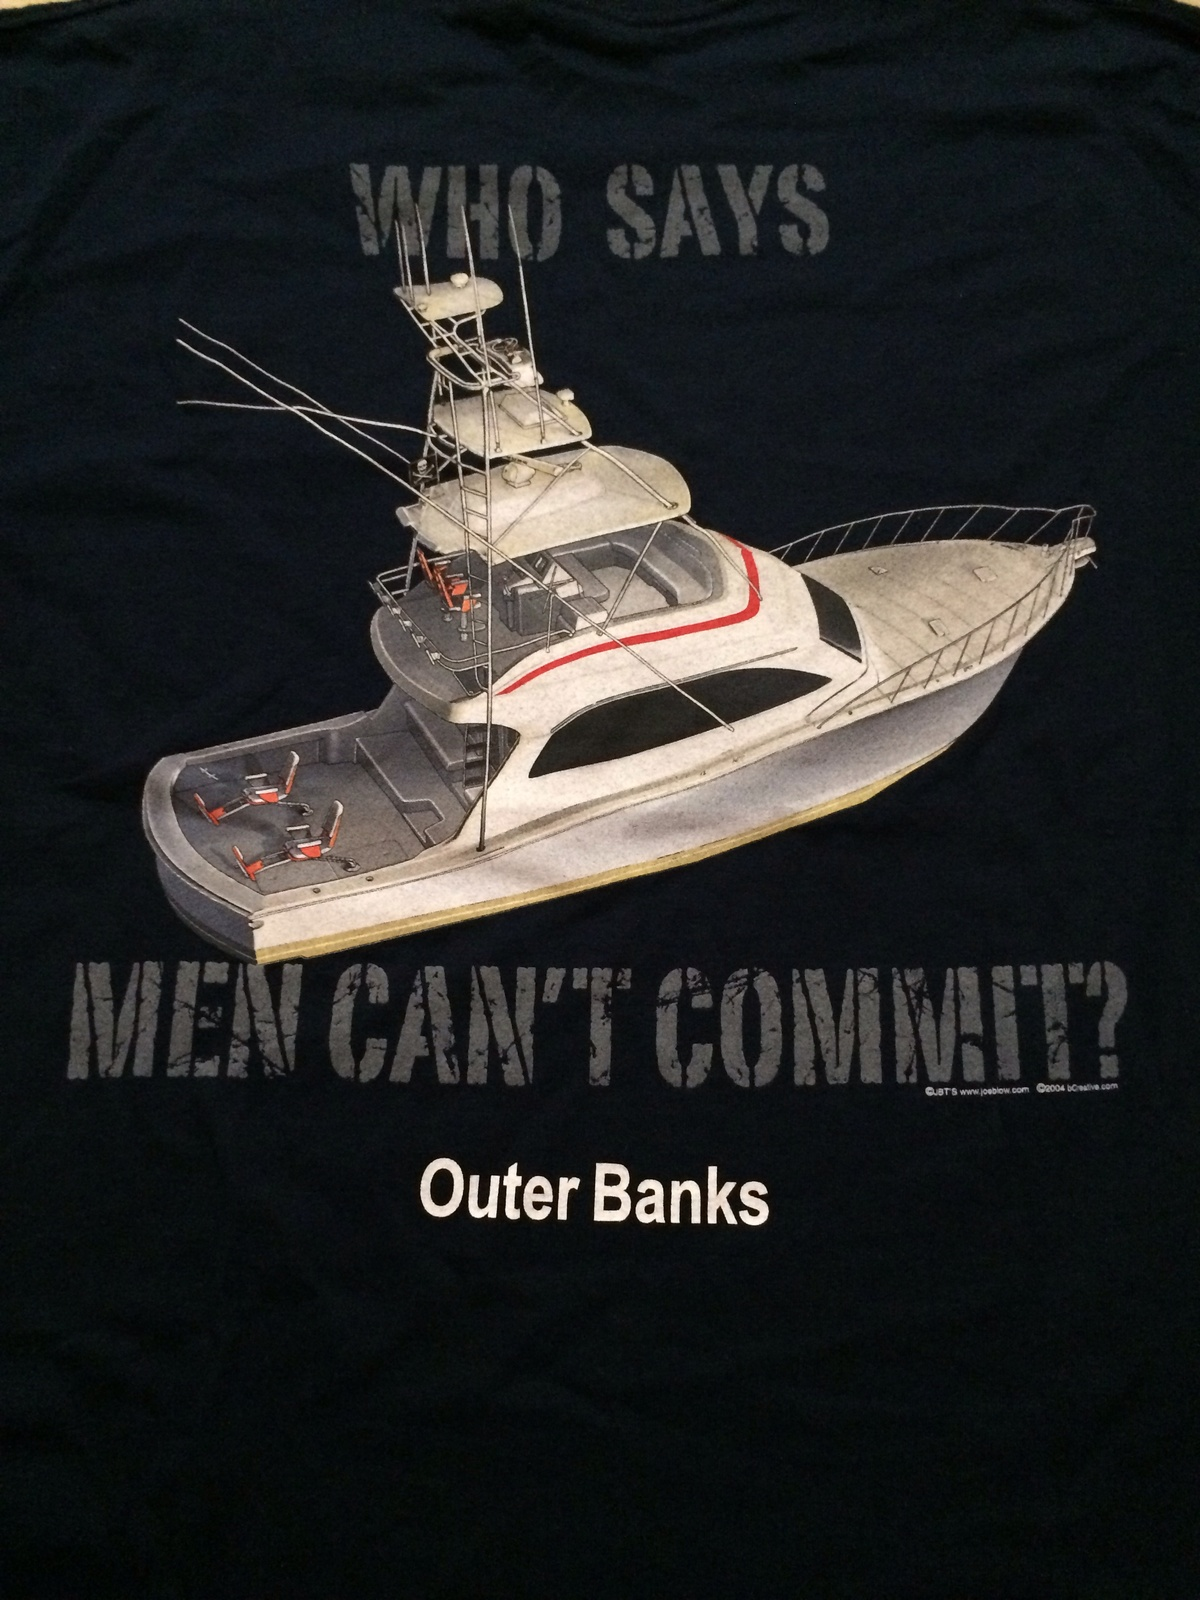 Outer Banks Cool Fishing / Boating T-Shirt Sz Medium  Who Says Men Cant Commit?